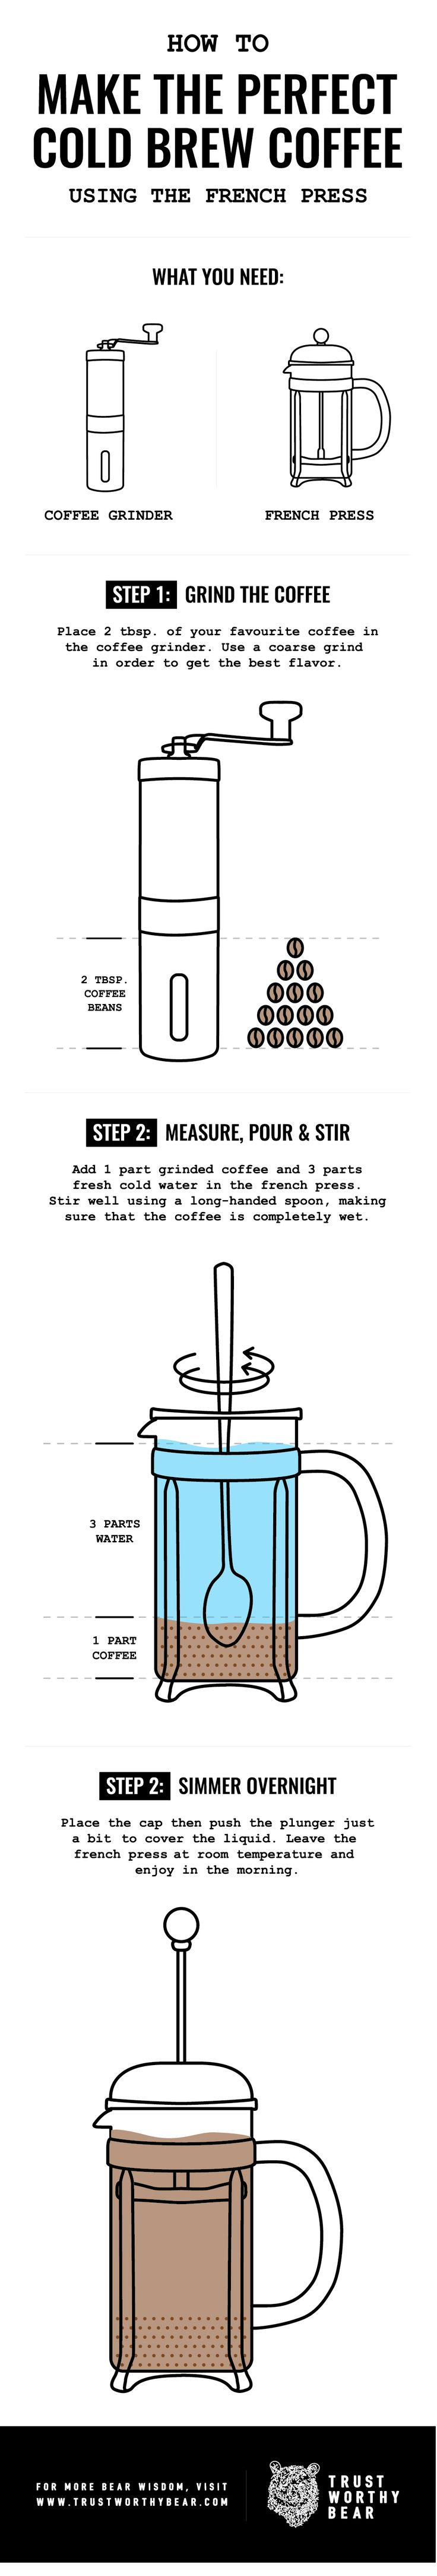 How to make the perfect cold brew coffee using a French Press! Download the pdf on www.trustworthybear.com #coffee #coldbrew #frenchpress